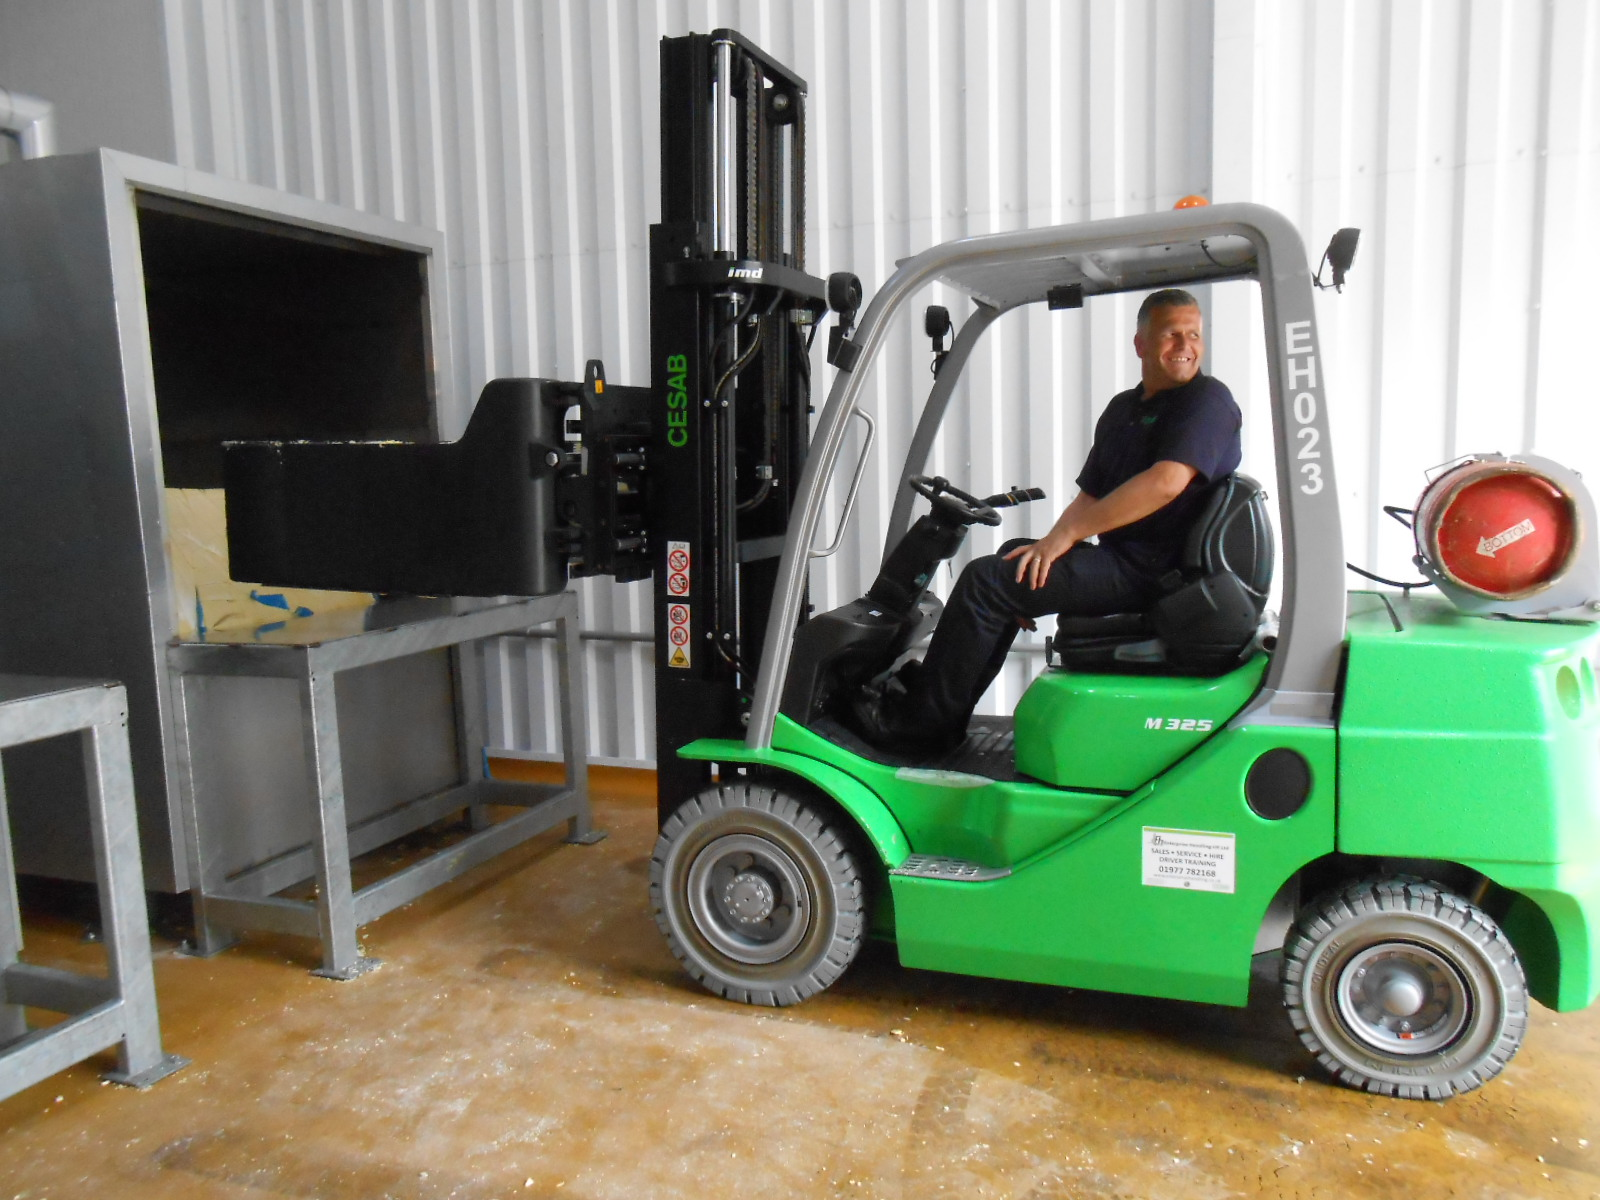 B&B Attachments helps improve productivity at Olam Foods